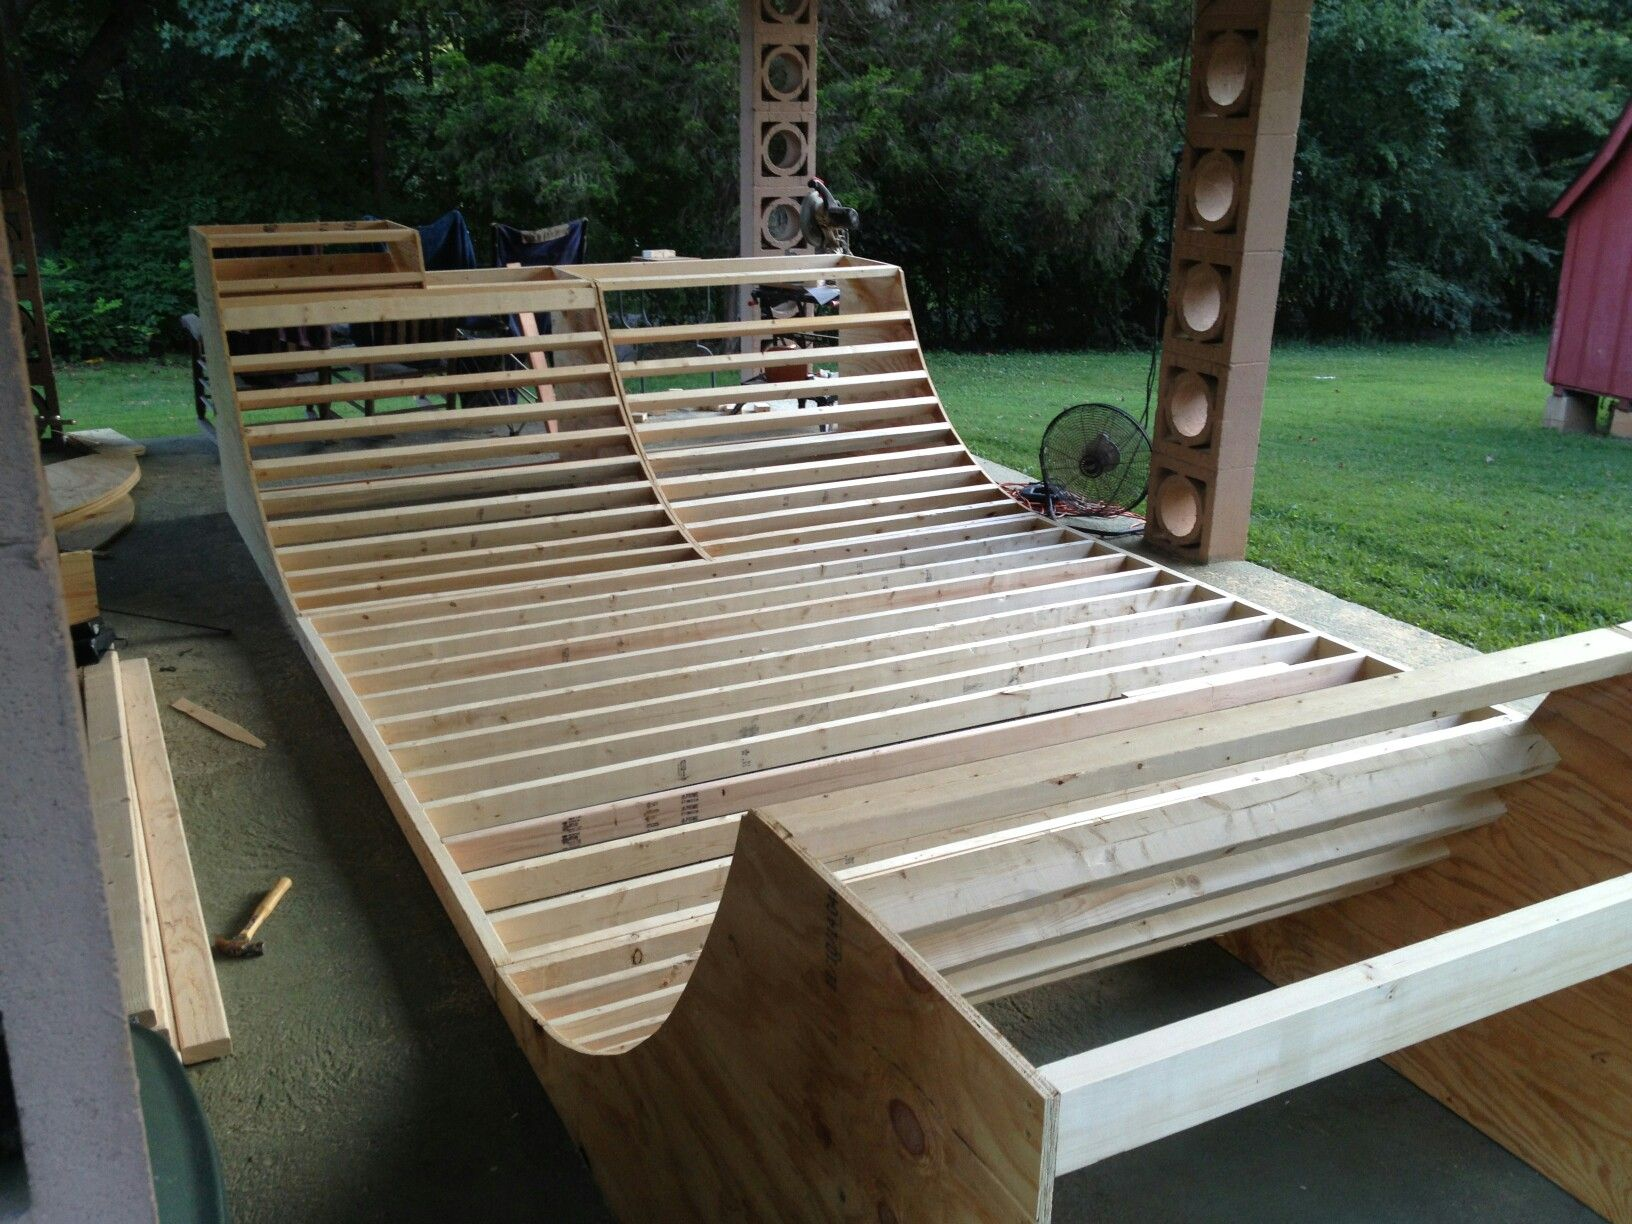 man i really want to build a mini ramp in my backyard consider it